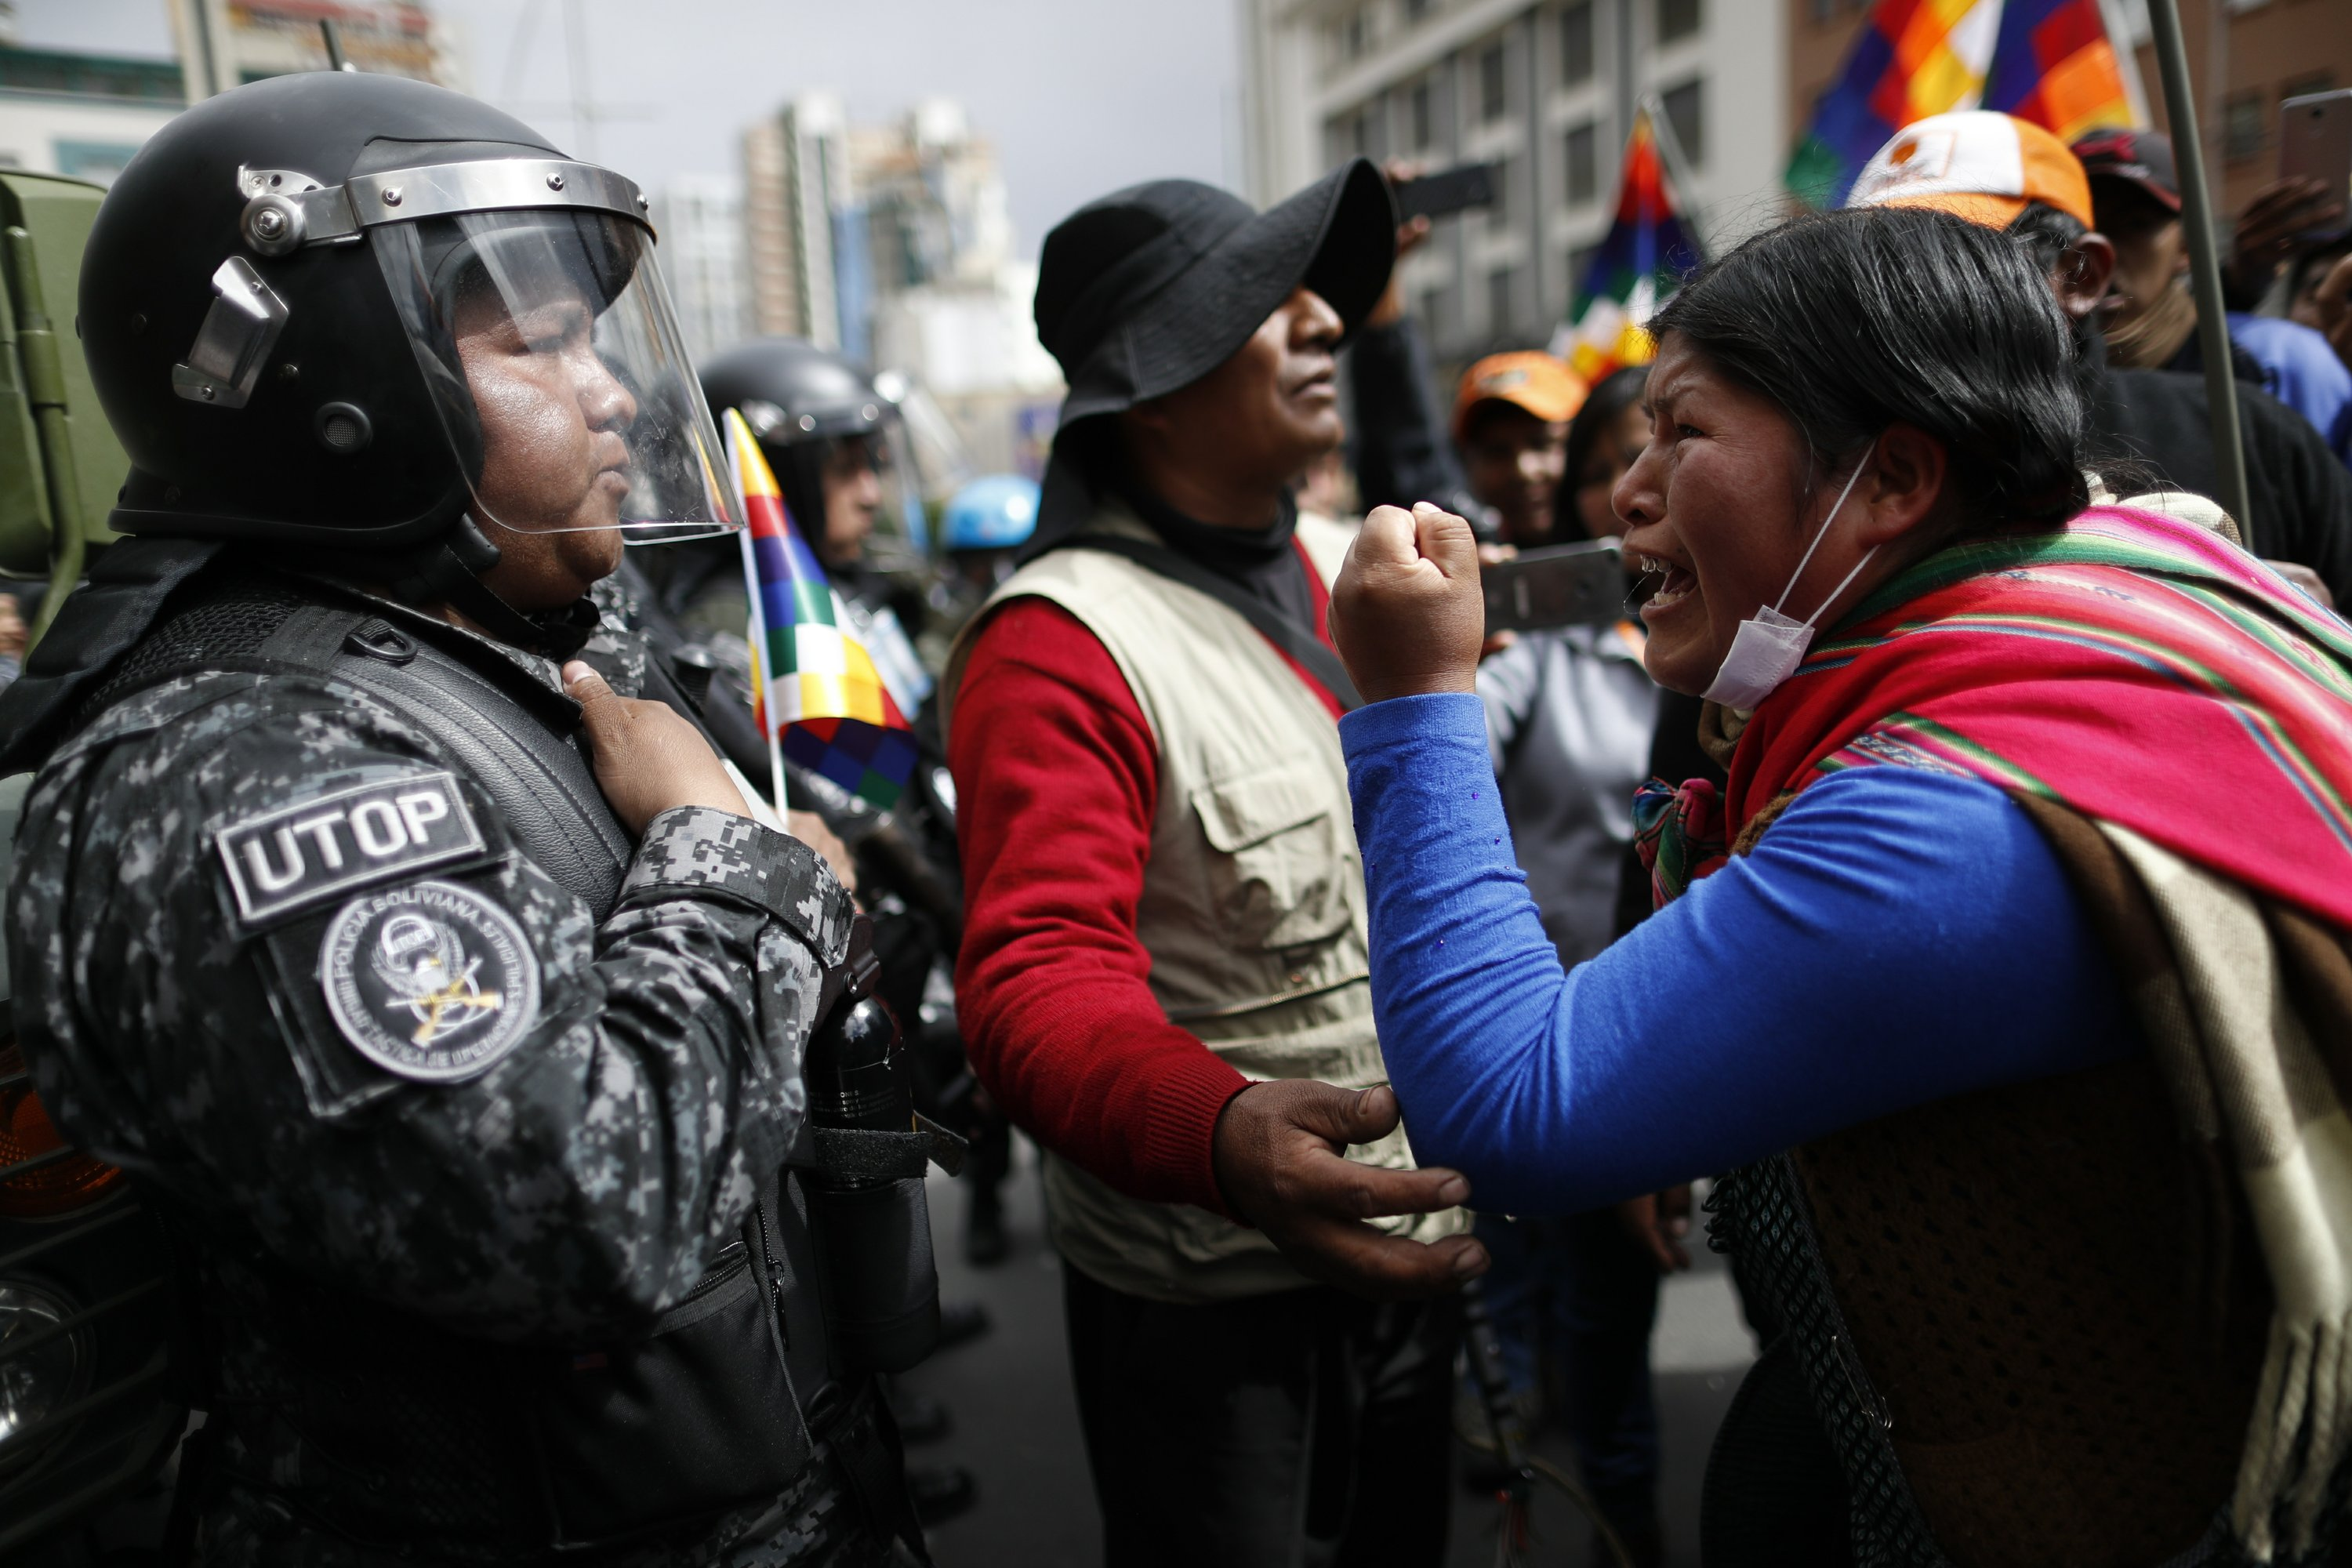 Tensions rise as Bolivia opposition leader claims presidency